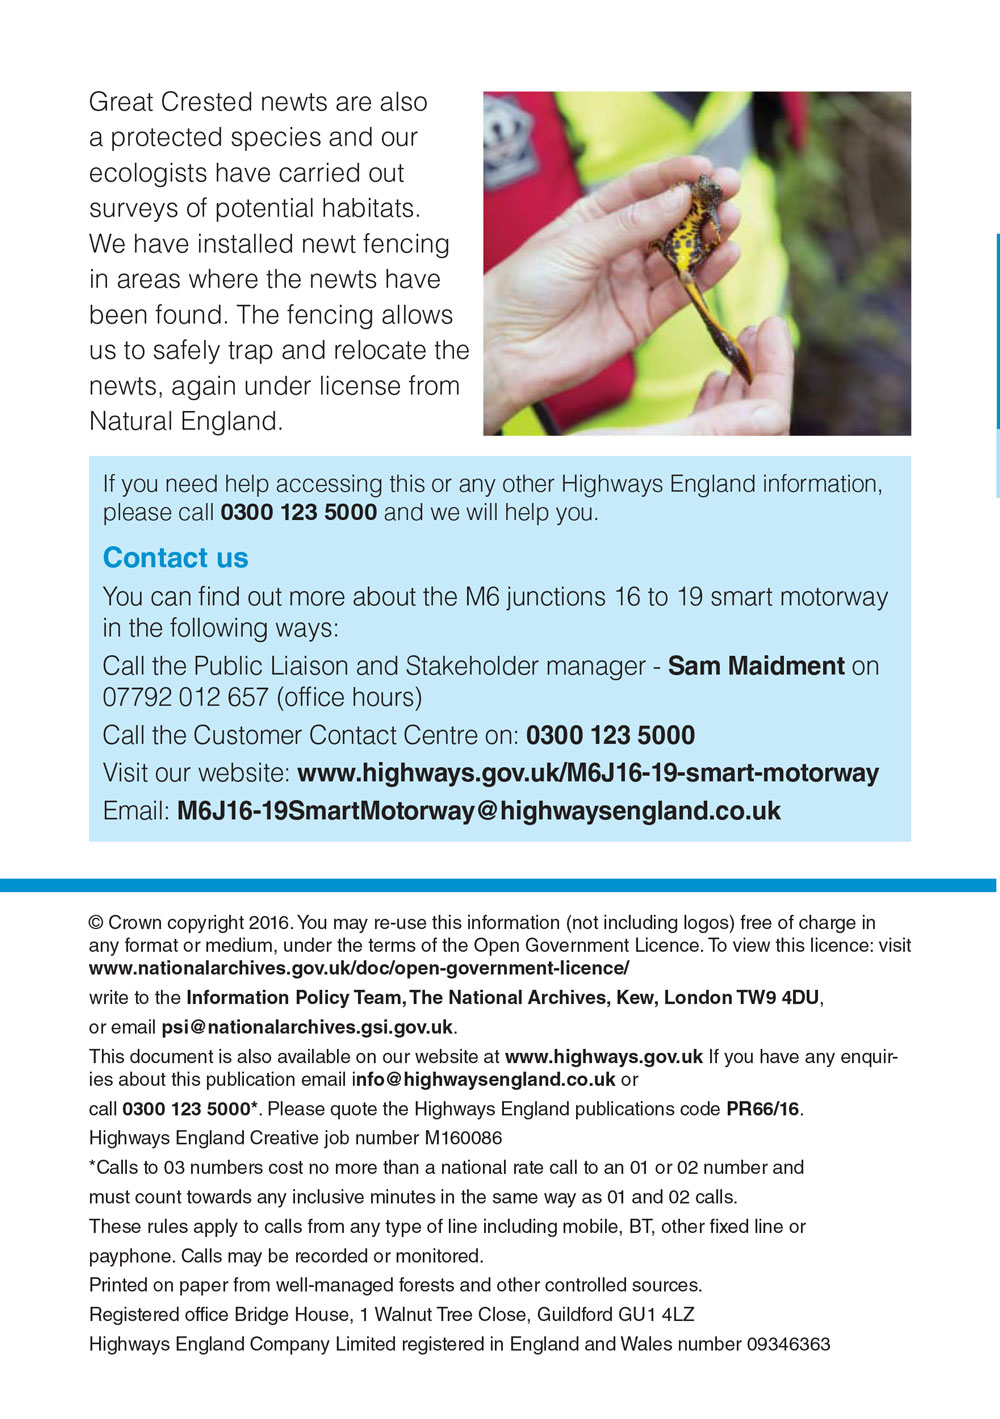 M6 Junction 16-19 Smart Motorway July Newsletter